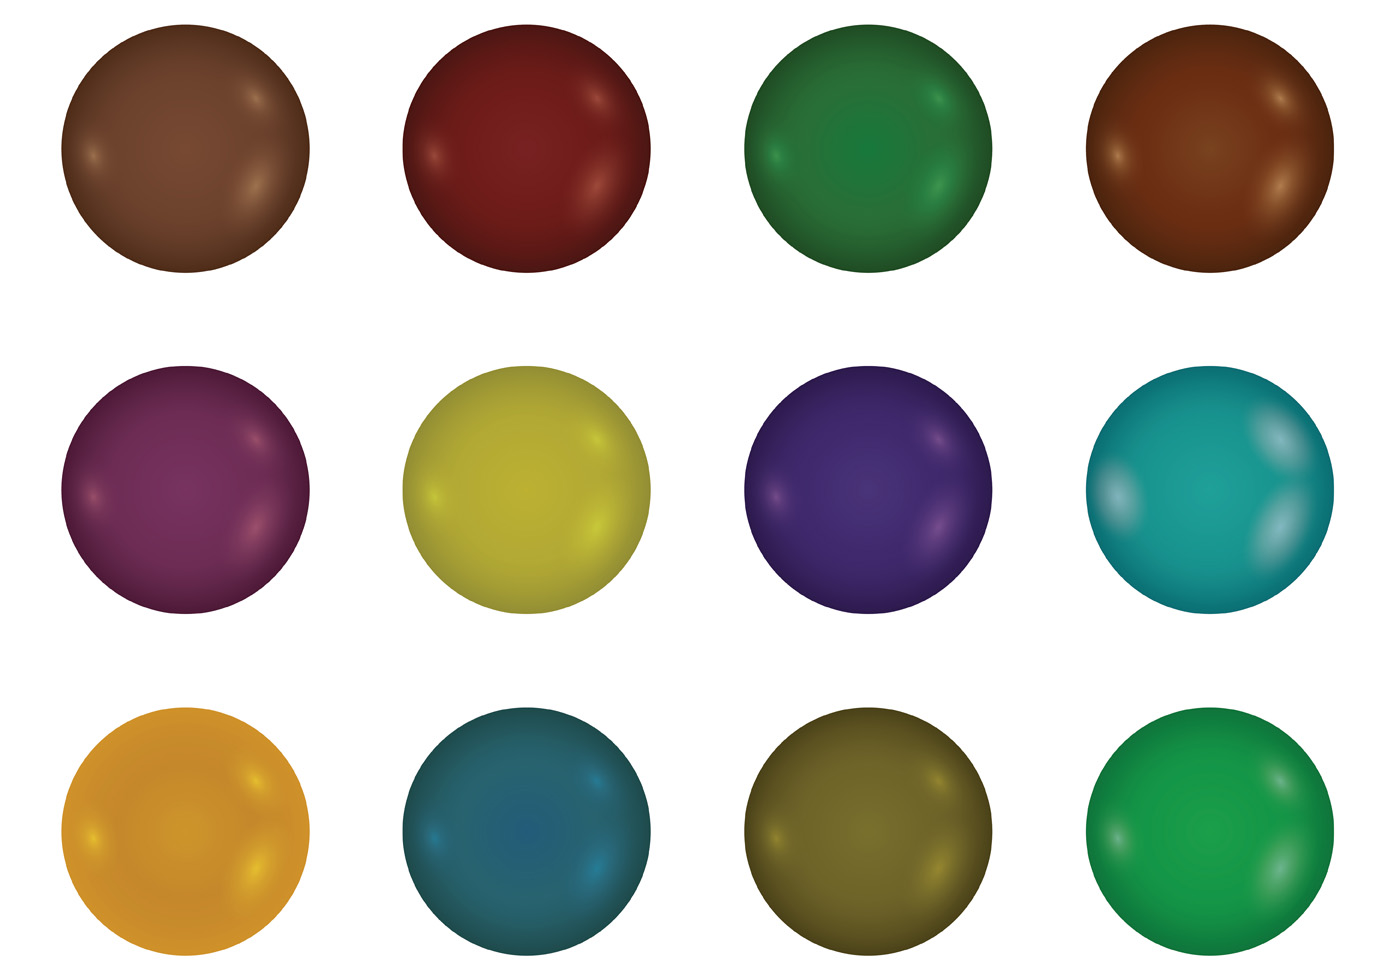 Smarties Icon Vector - Download Free Vector Art, Stock ... Smarties Box Design